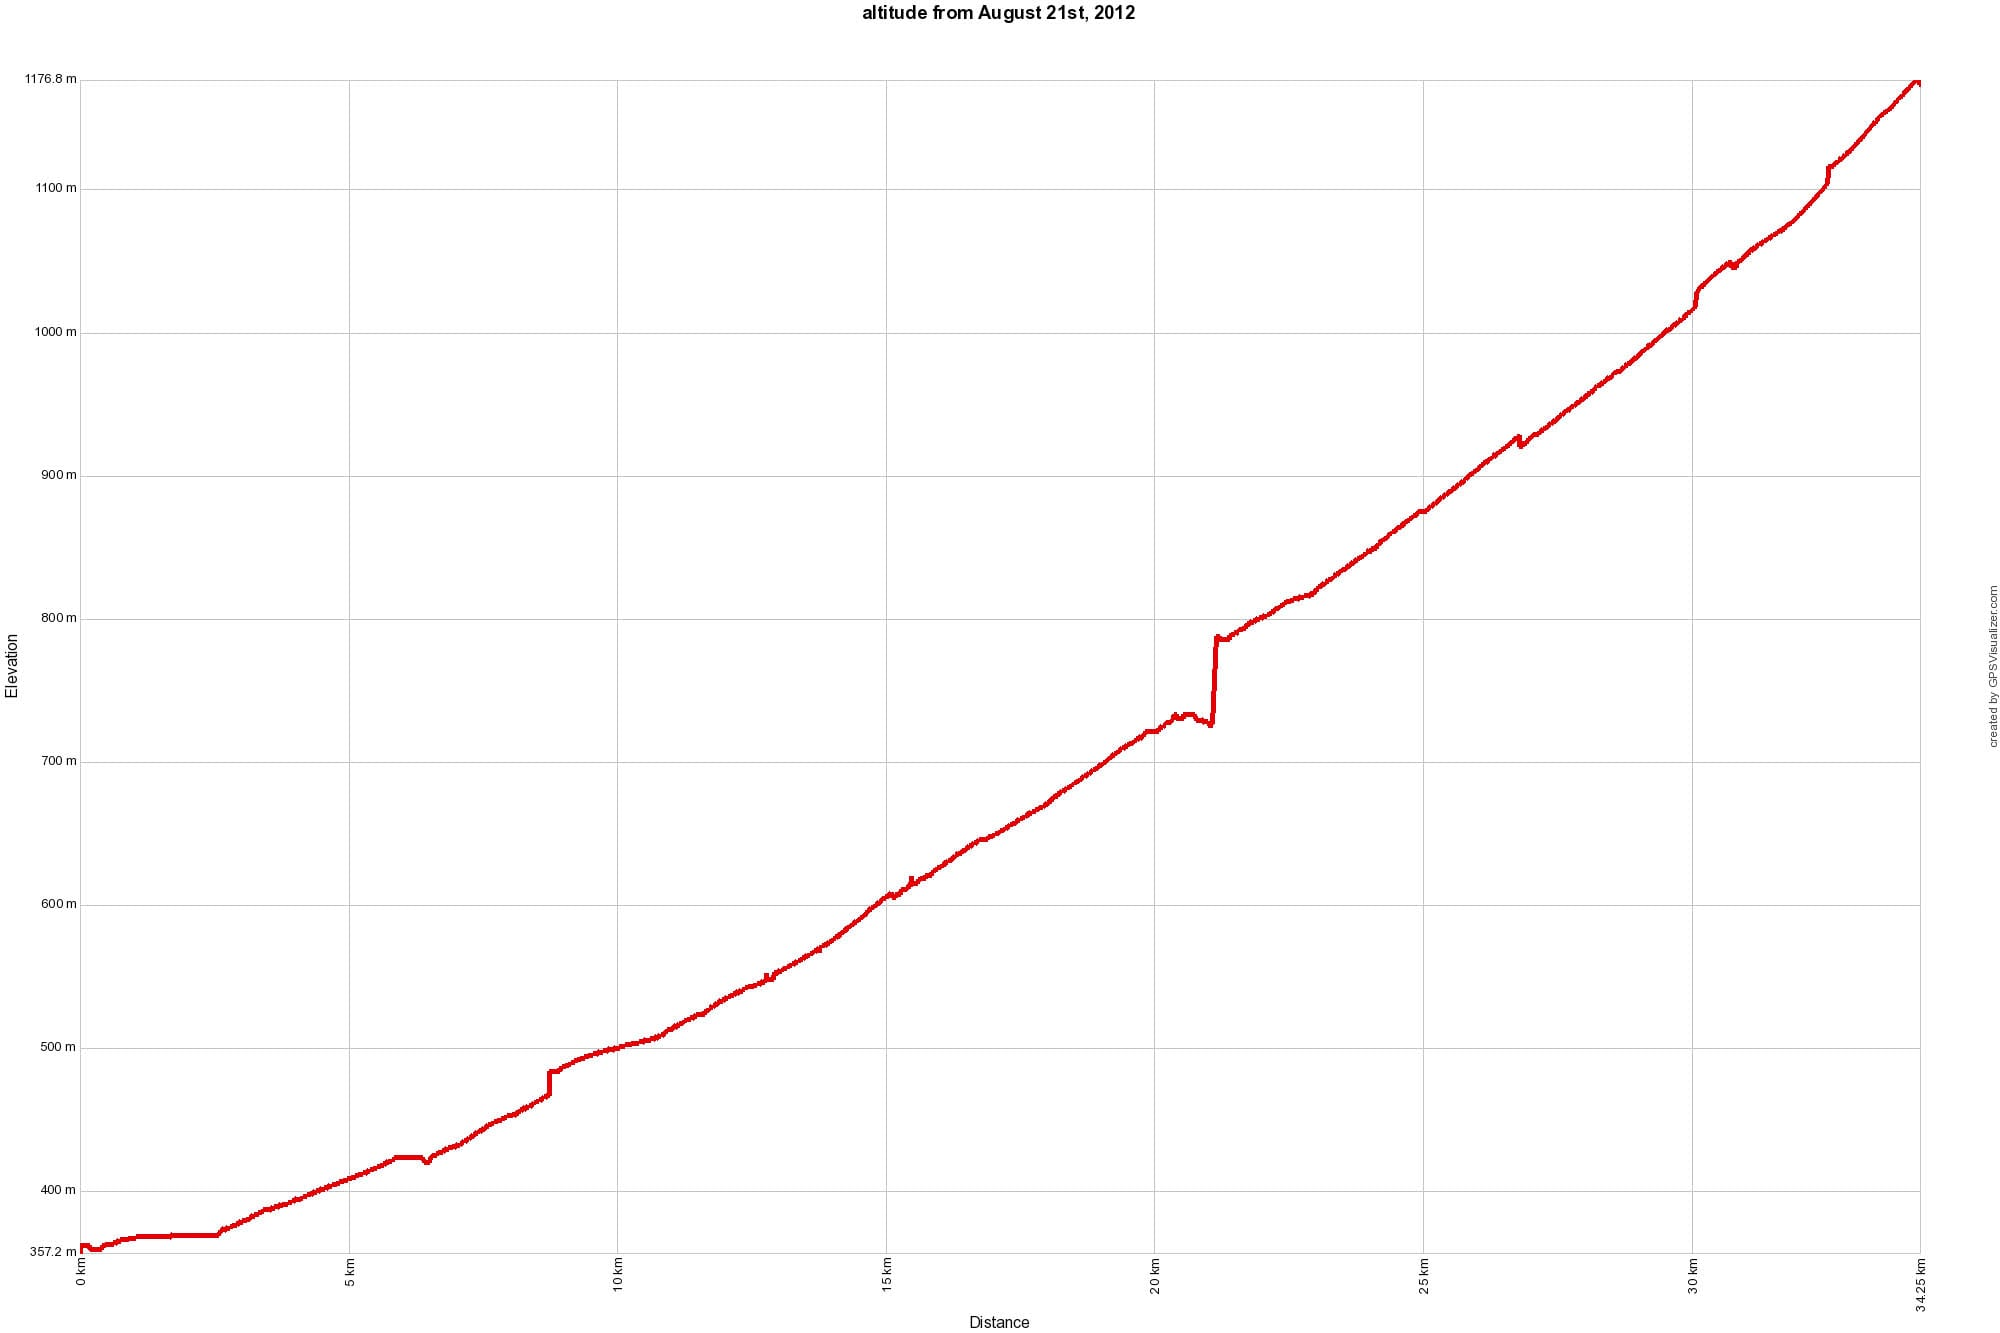 altitude from August 21st, 2012